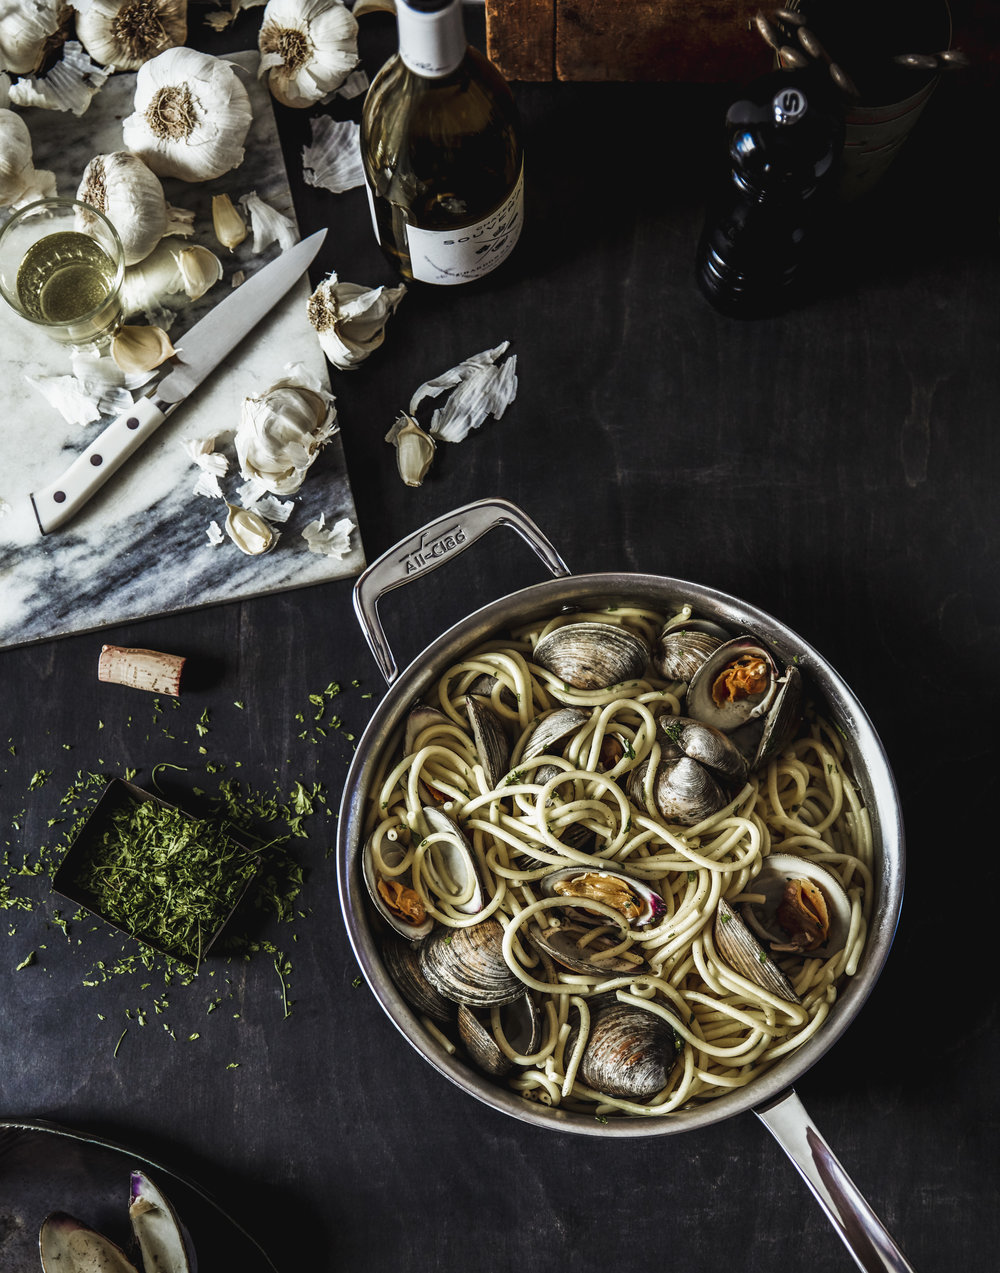 25_HOB_02_17_Clams_Pasta.jpg